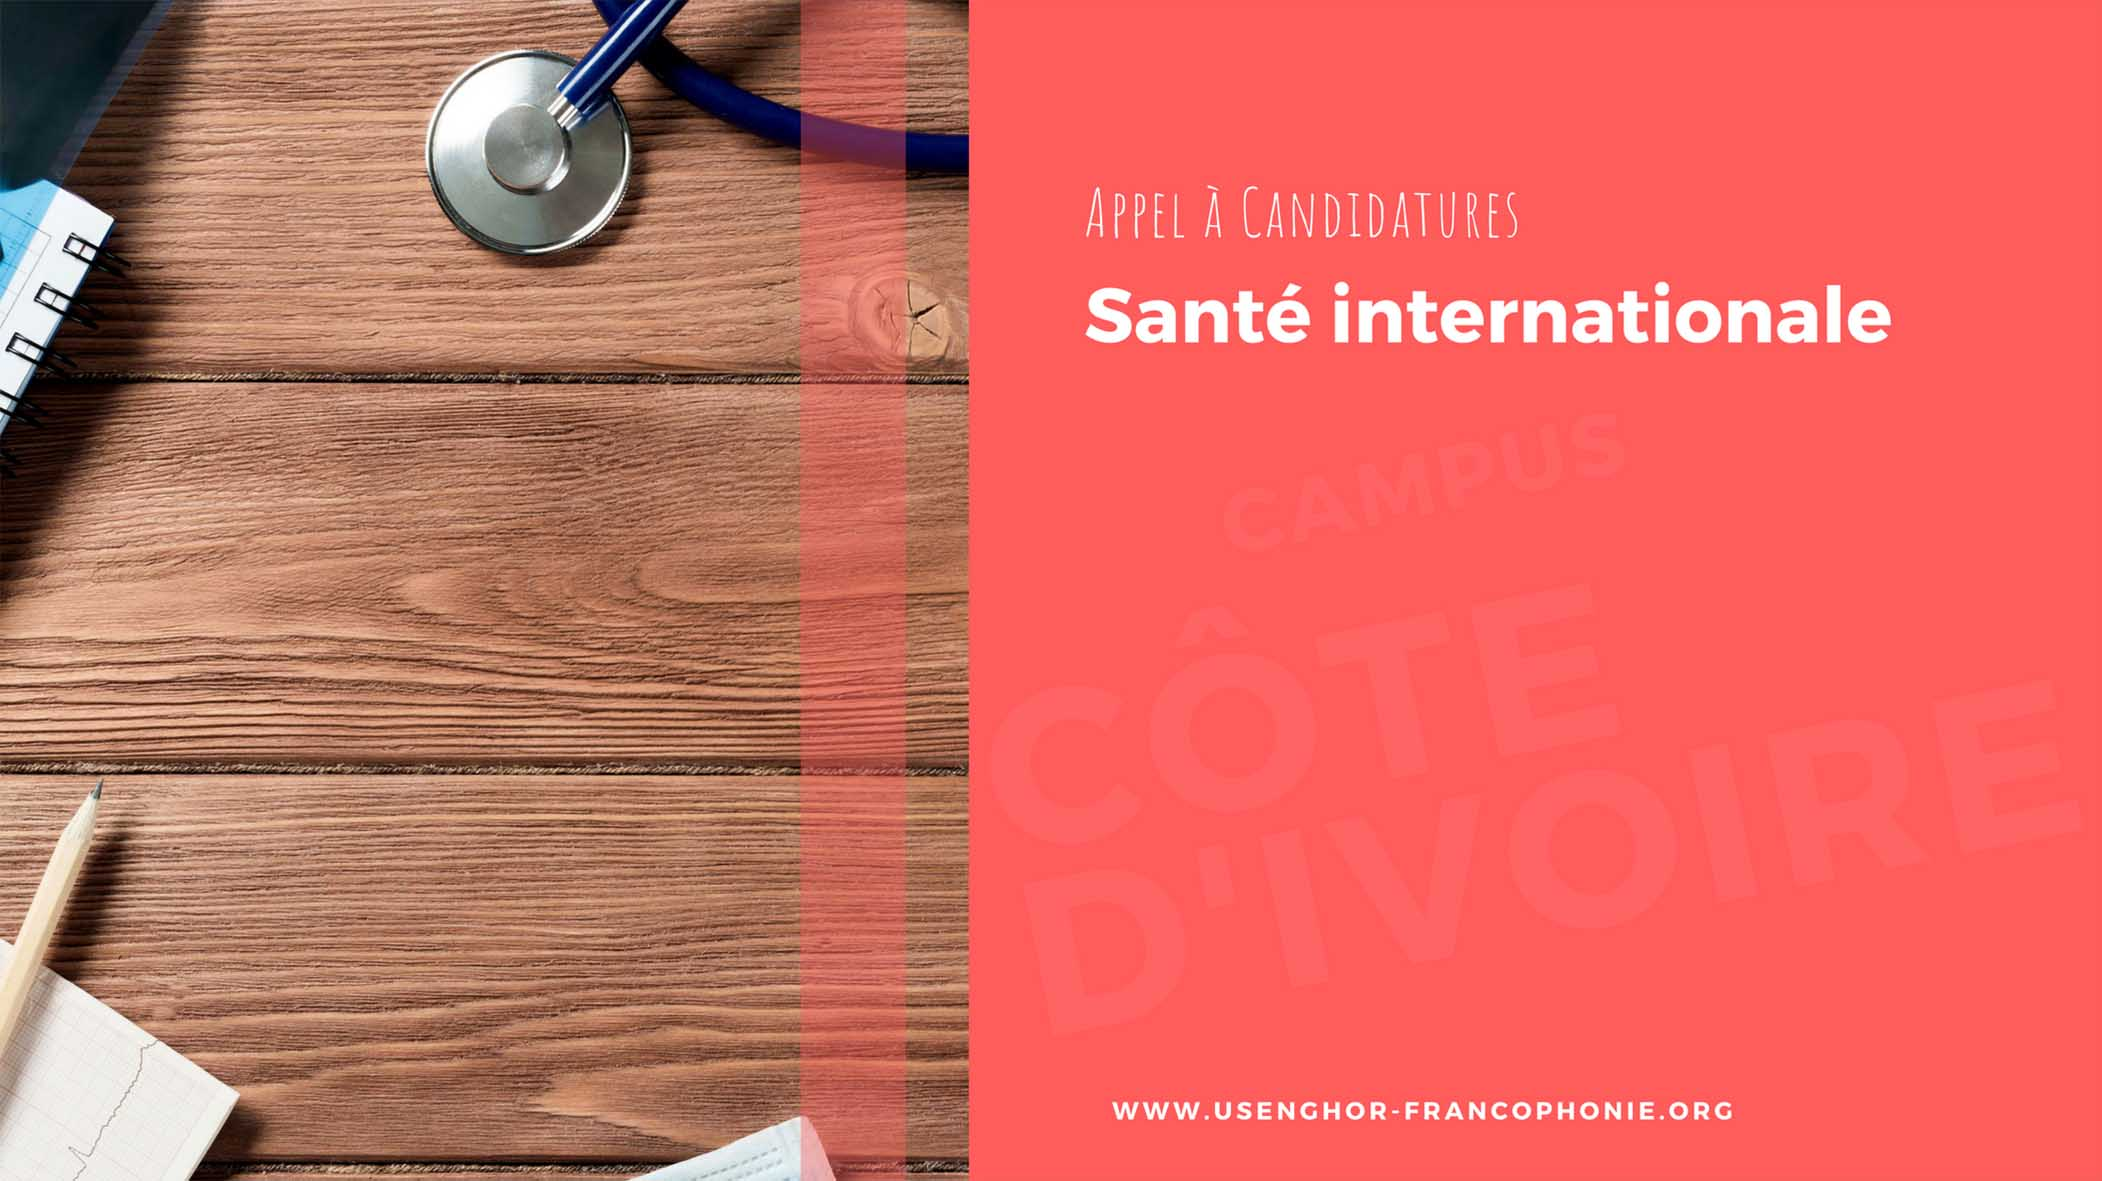 Appel à candidatures : Master 2 en Santé internationale